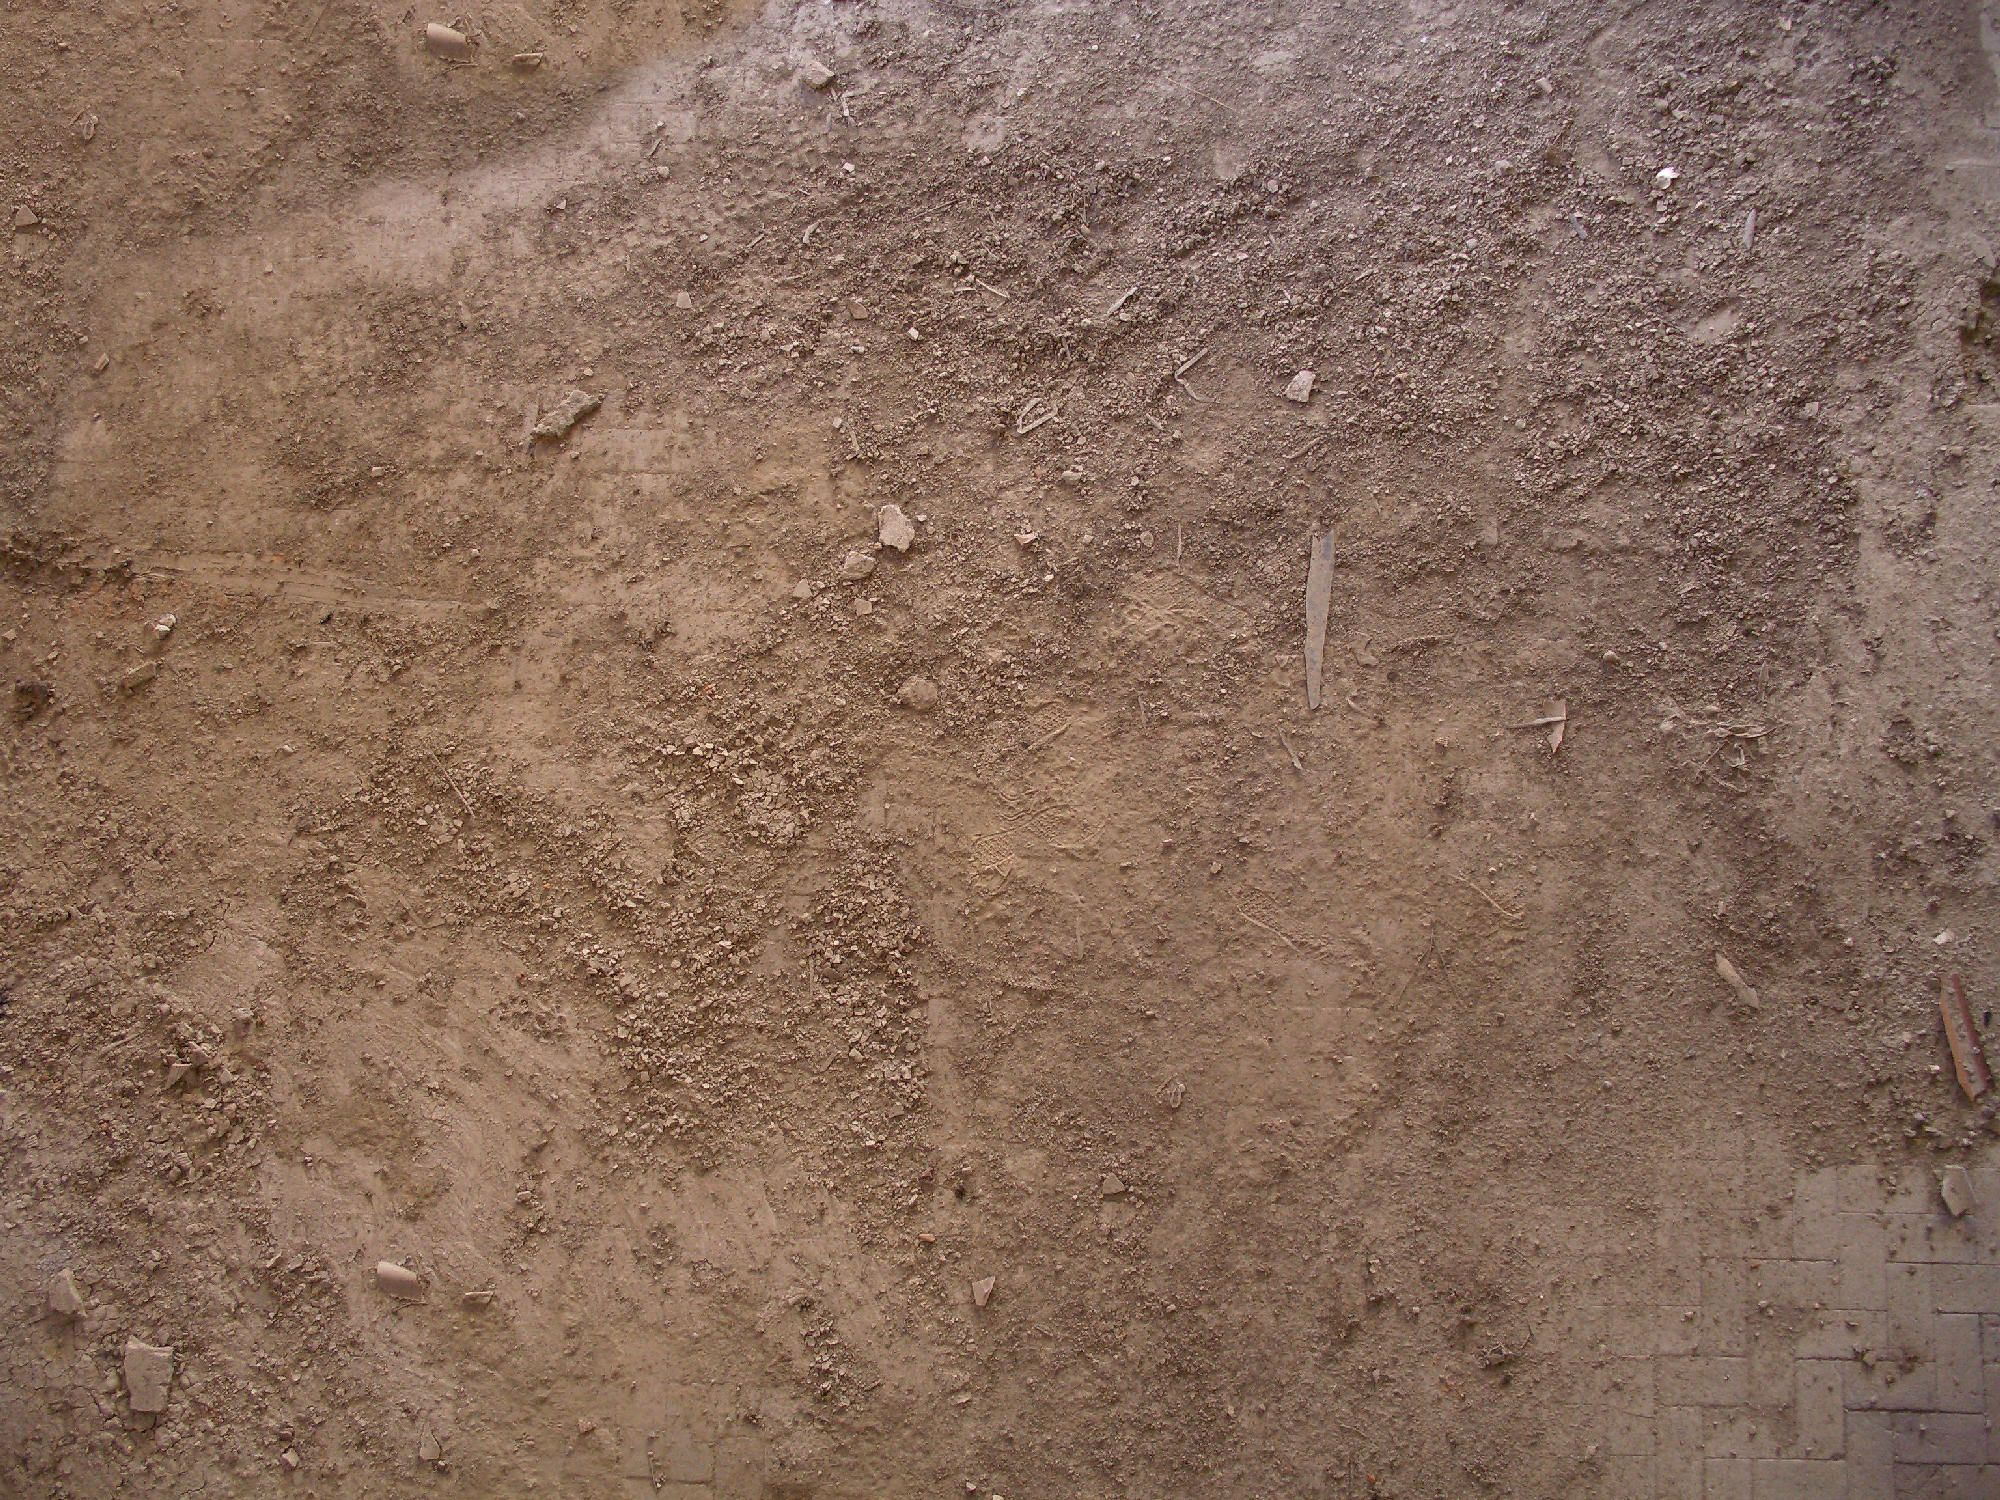 Lava texture bing images - Free Texture Very Dirt Ground Floor 2 Ground Lugher Texture Library